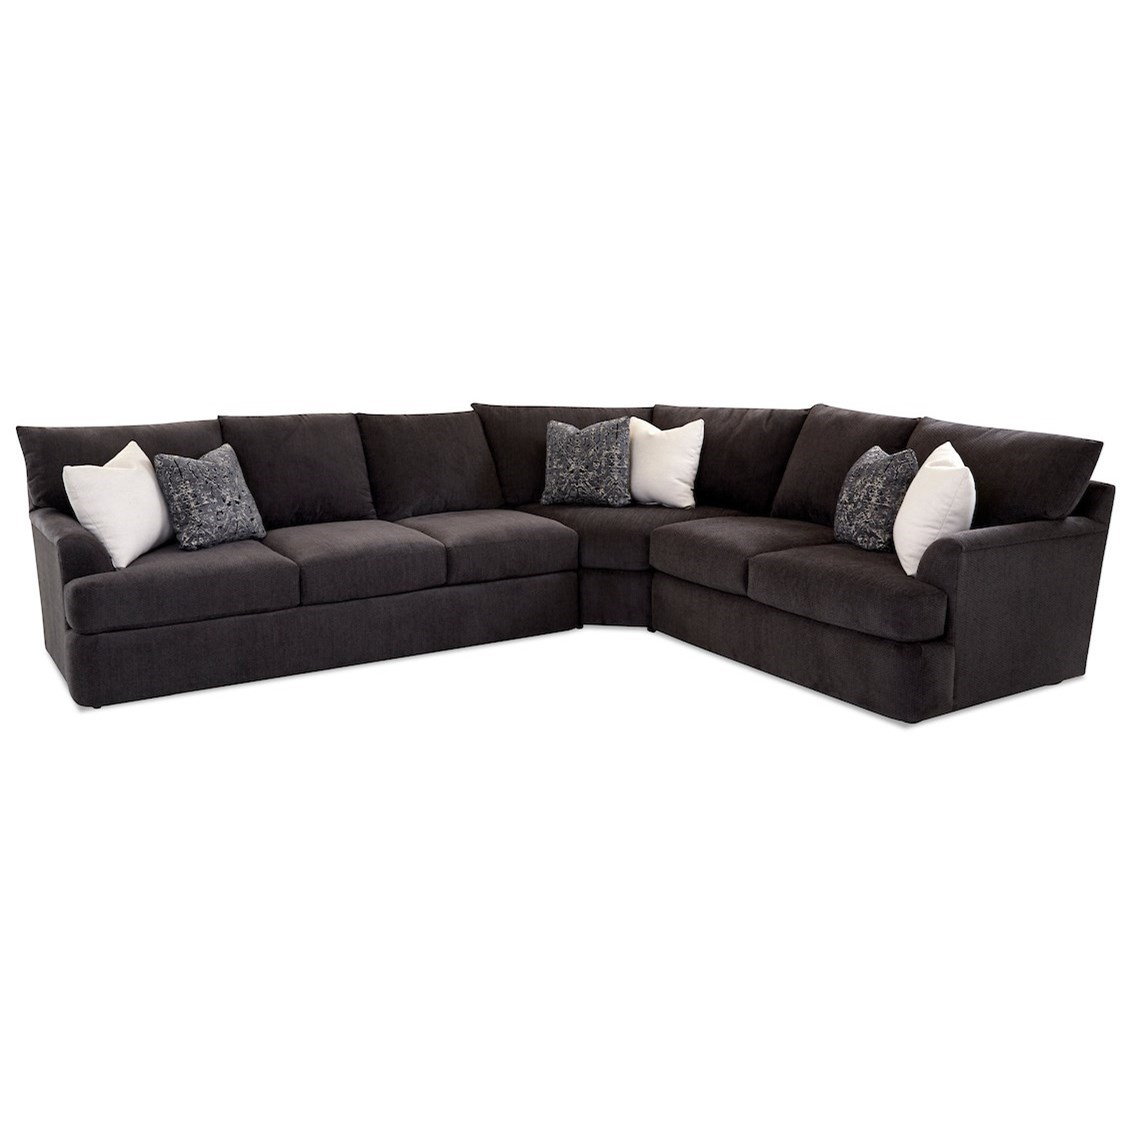 Findley 3-Piece Sectional Sofa w/ LAF Sofa by Klaussner at Johnny Janosik